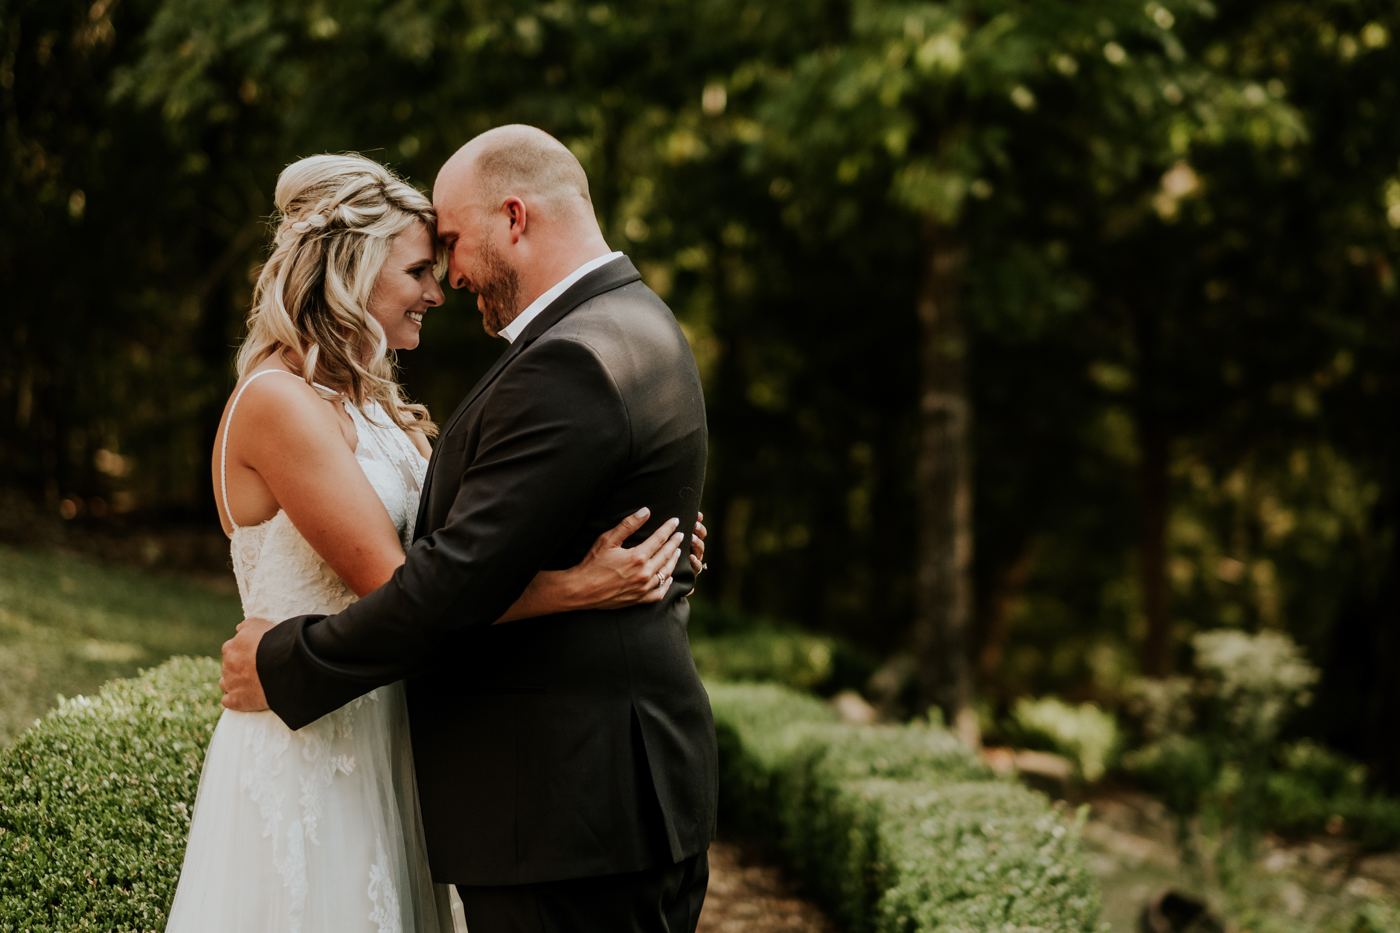 Haley+Kurtis.Blog©mileswittboyer.com2018-29.jpg